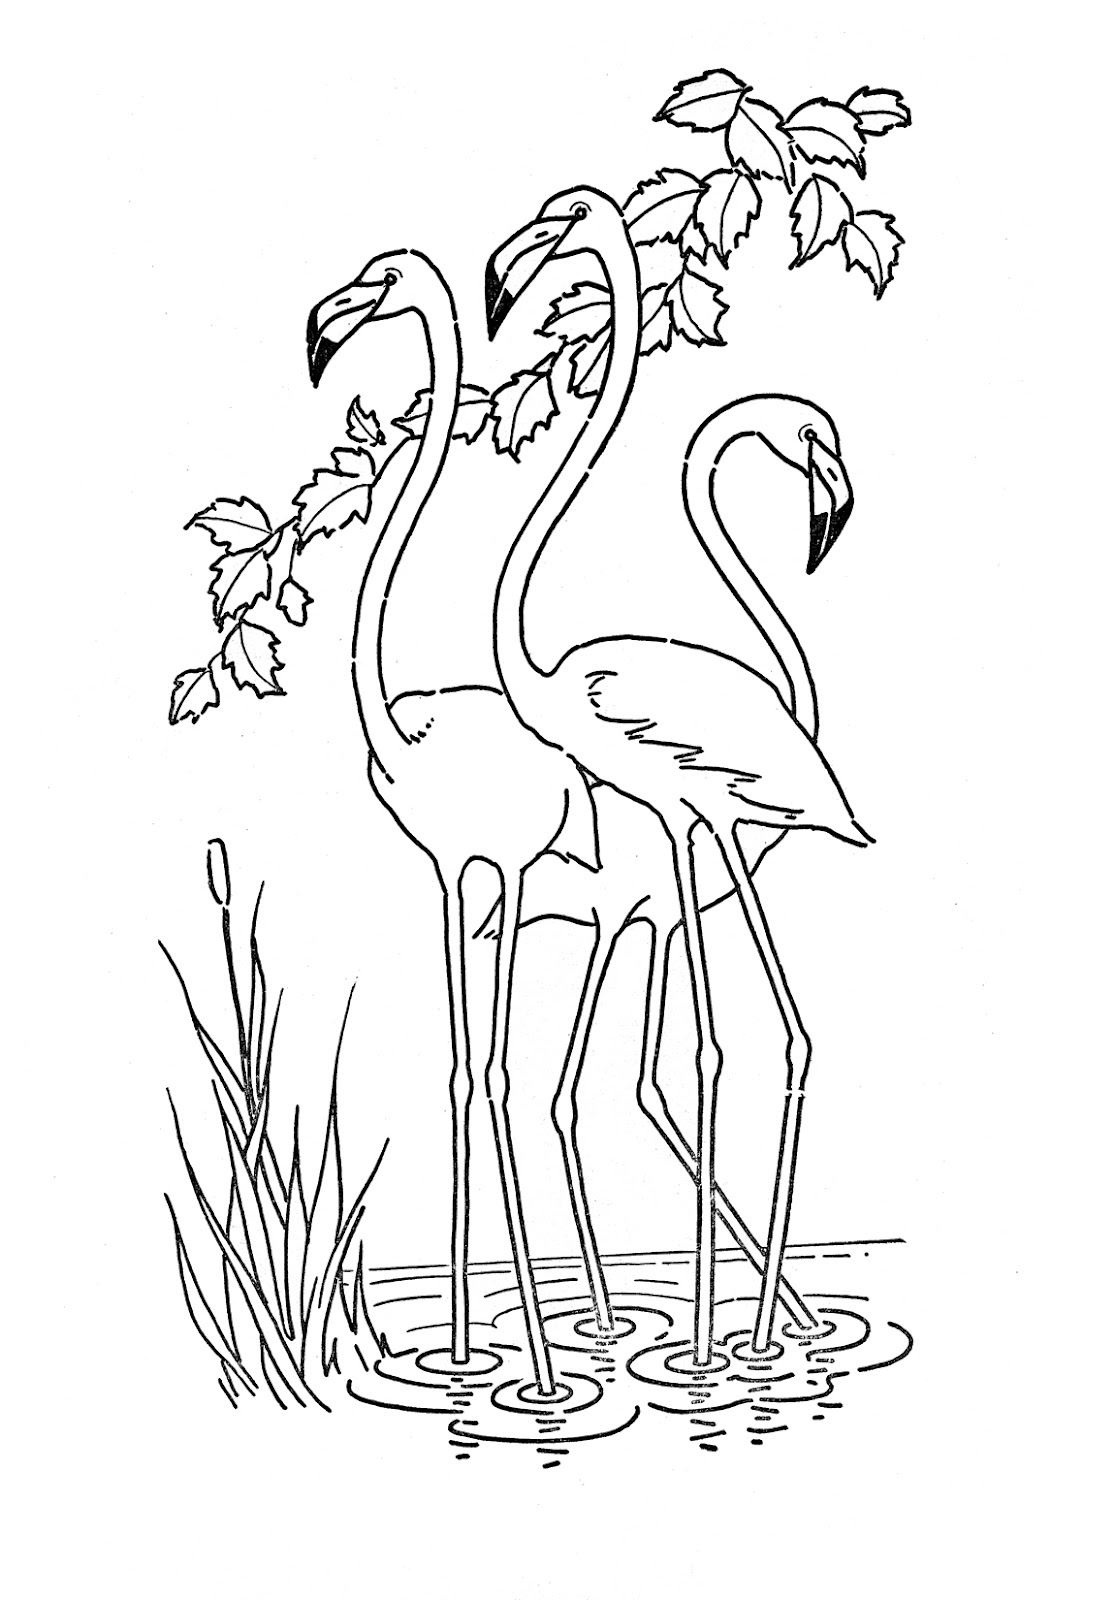 kids printable flamingo coloring page - Flamingo Coloring Page